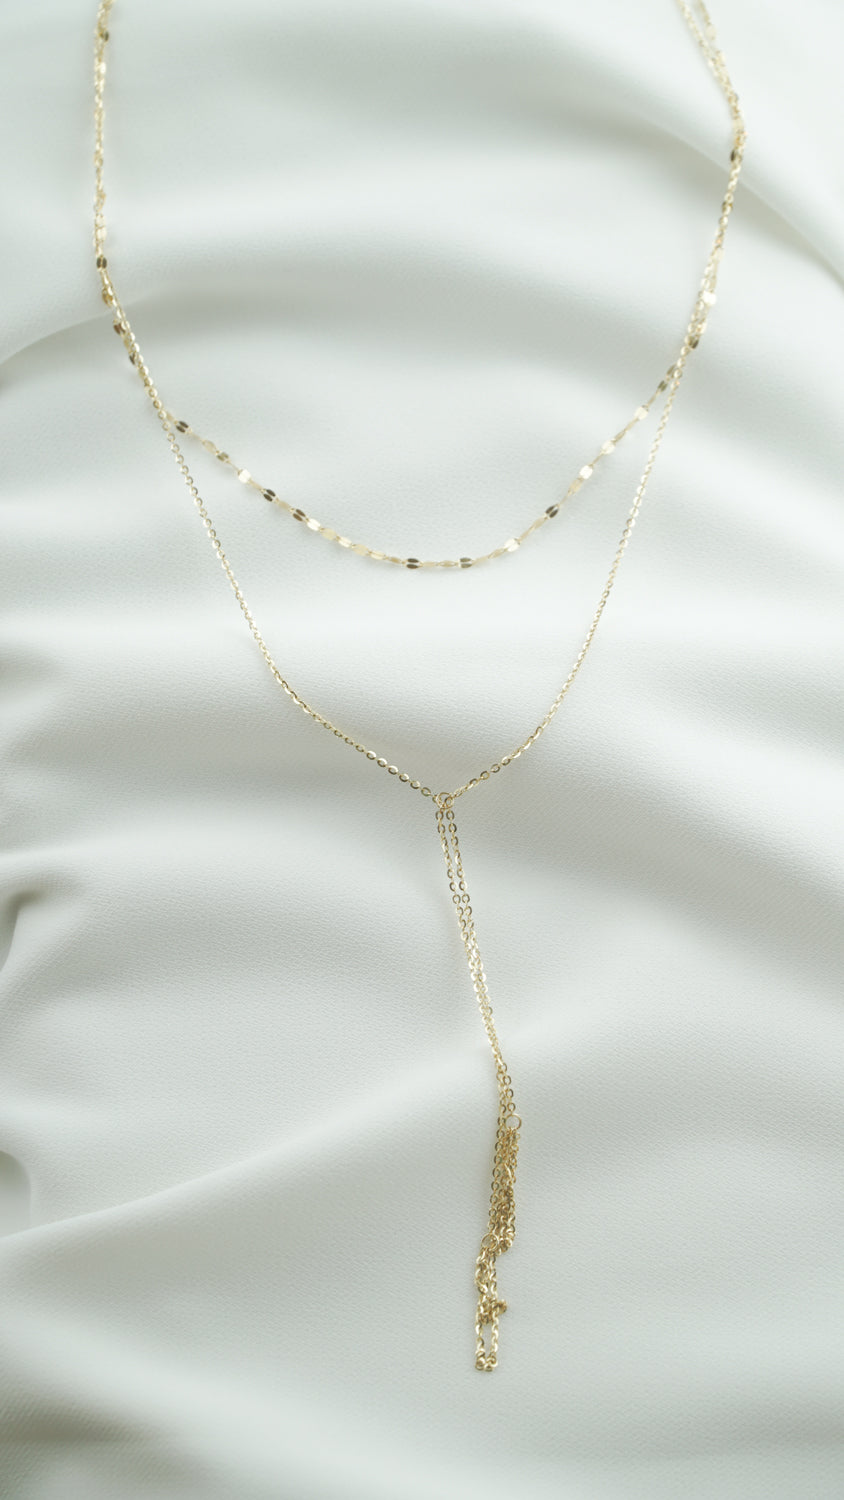 14K GOLD Pele's Tears Necklace